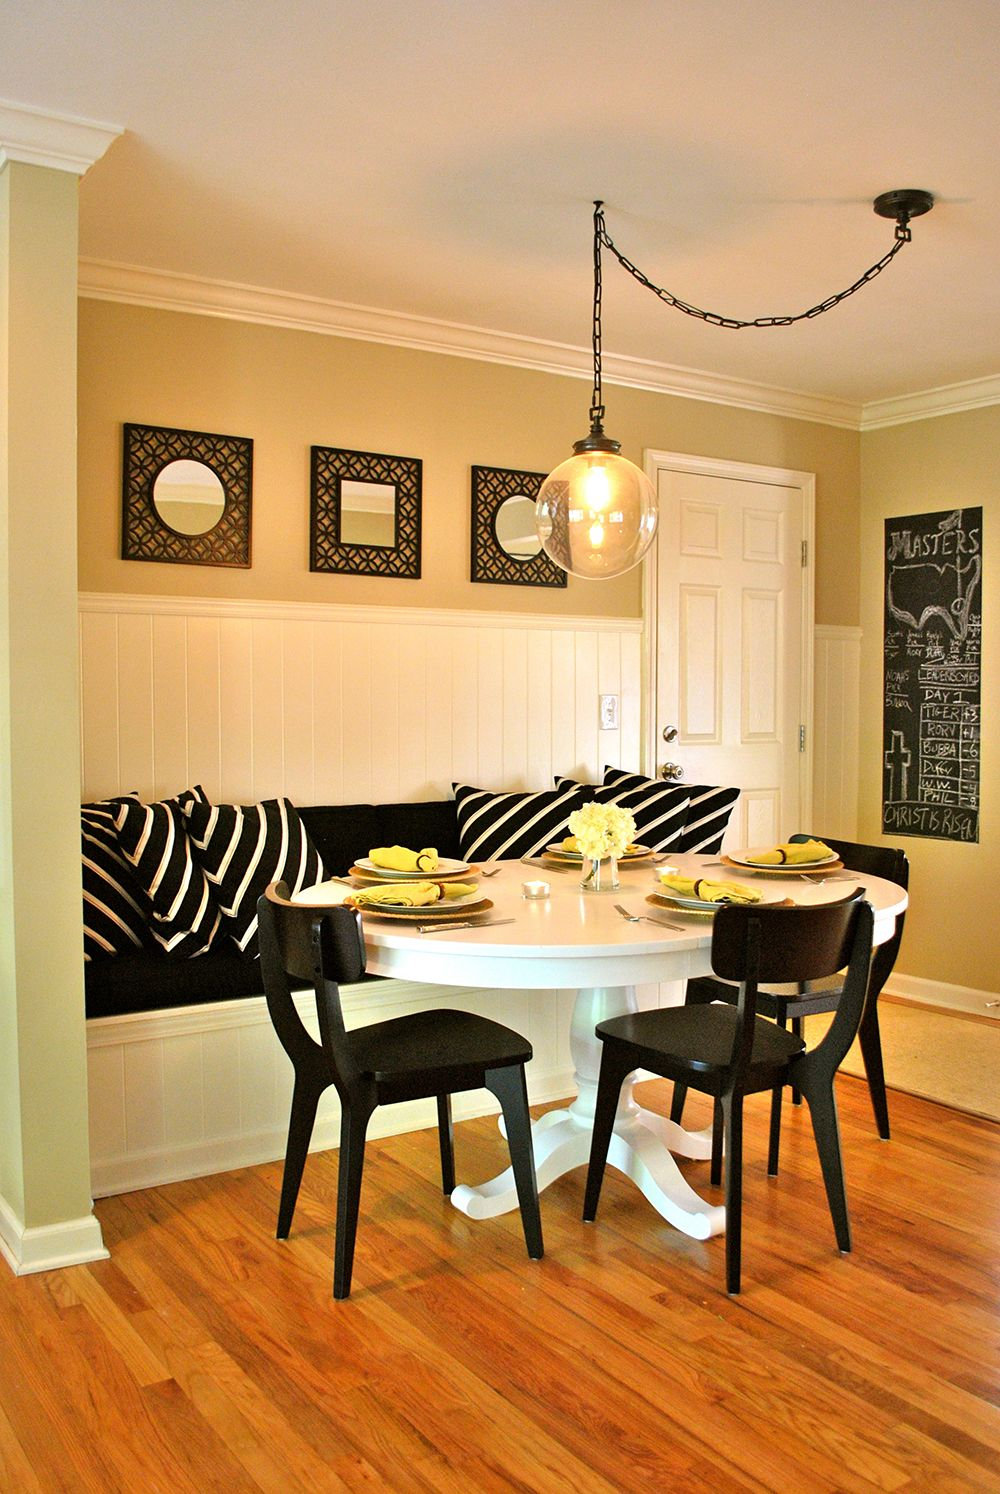 50 Stunning Breakfast Nook Ideas You Have to See Nooks